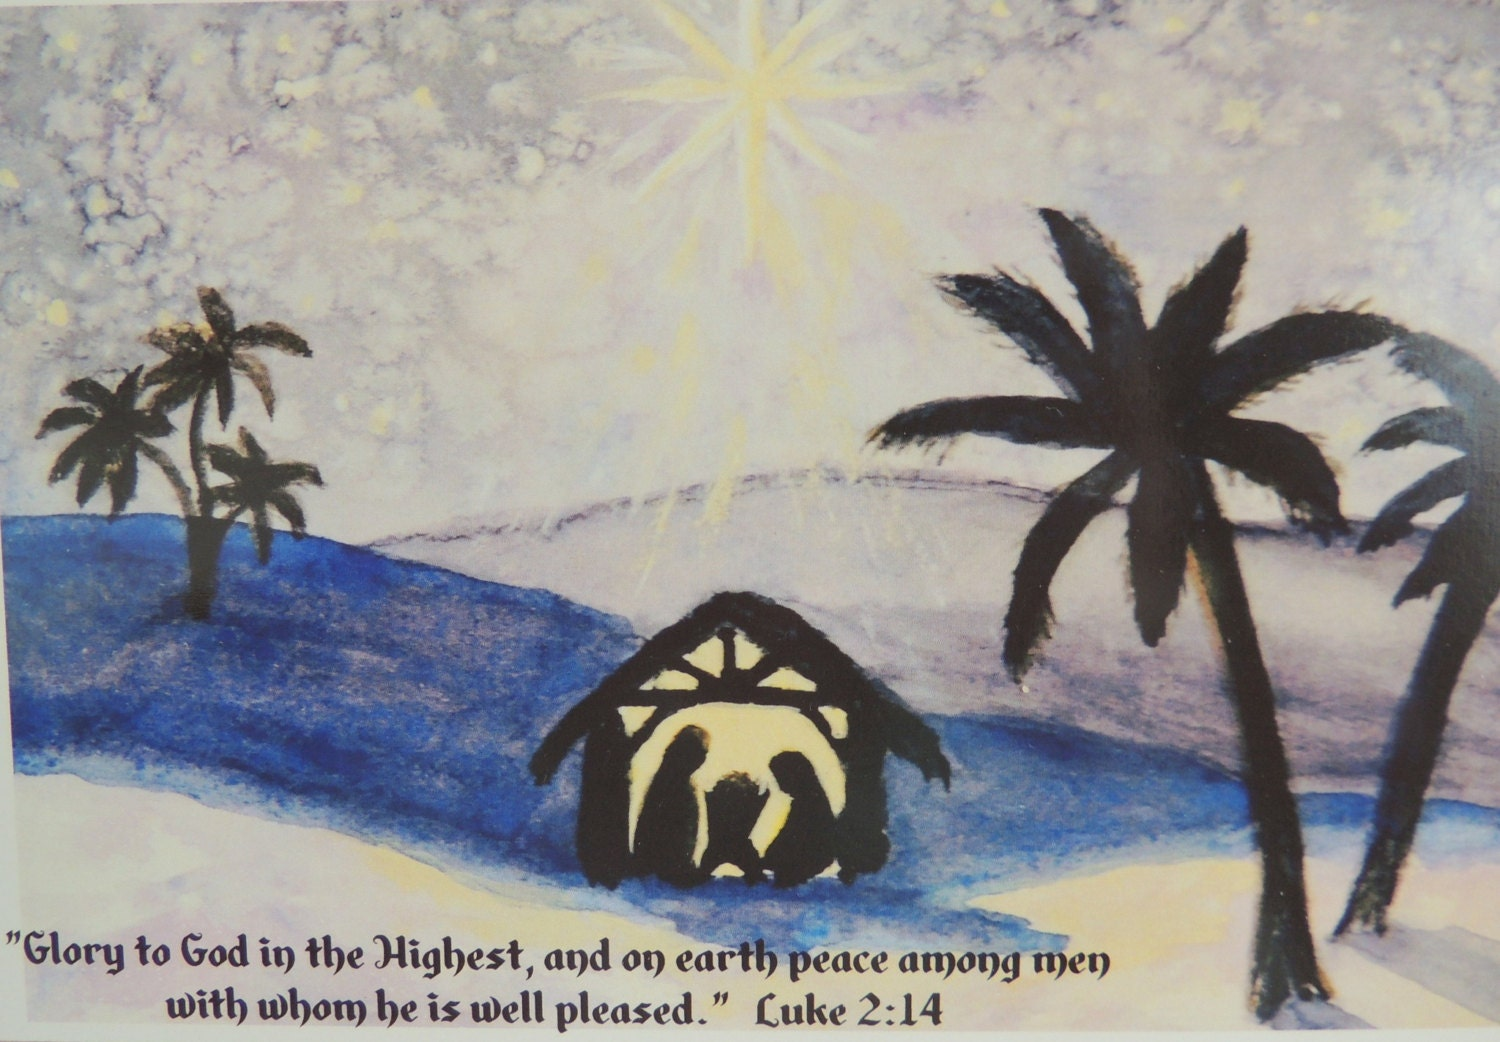 SALE Christmas Cards Watercolor Art sets of 5 cards Nativity scene ...